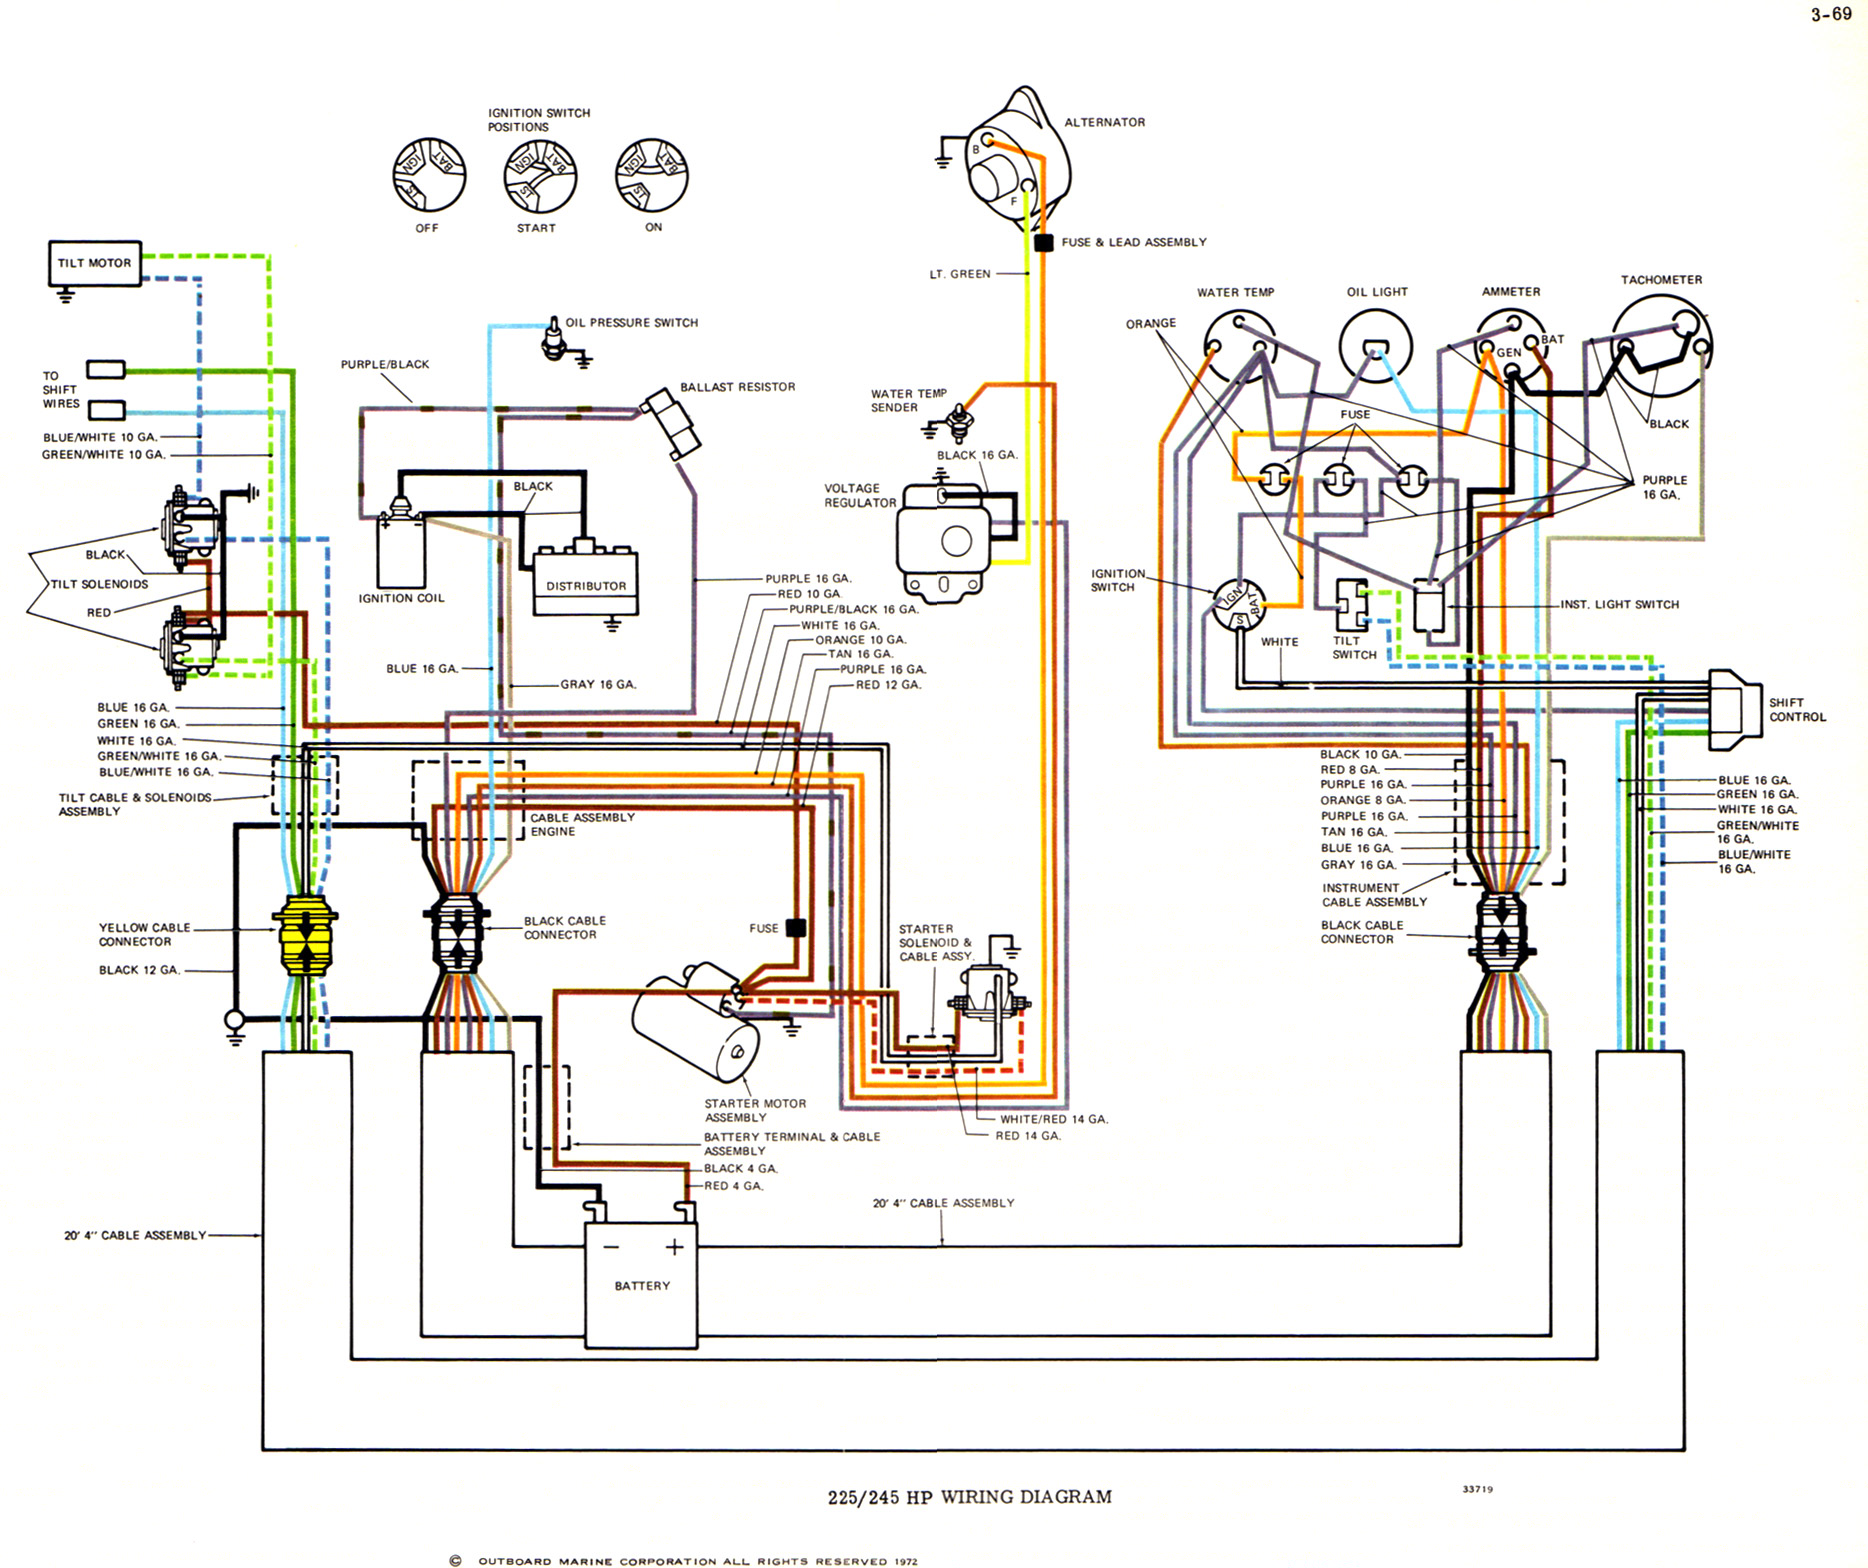 73_OMC_V8_all_big marine tachometer wiring diagram sun tachometer wiring diagram suzuki outboard tachometer wiring diagram at edmiracle.co